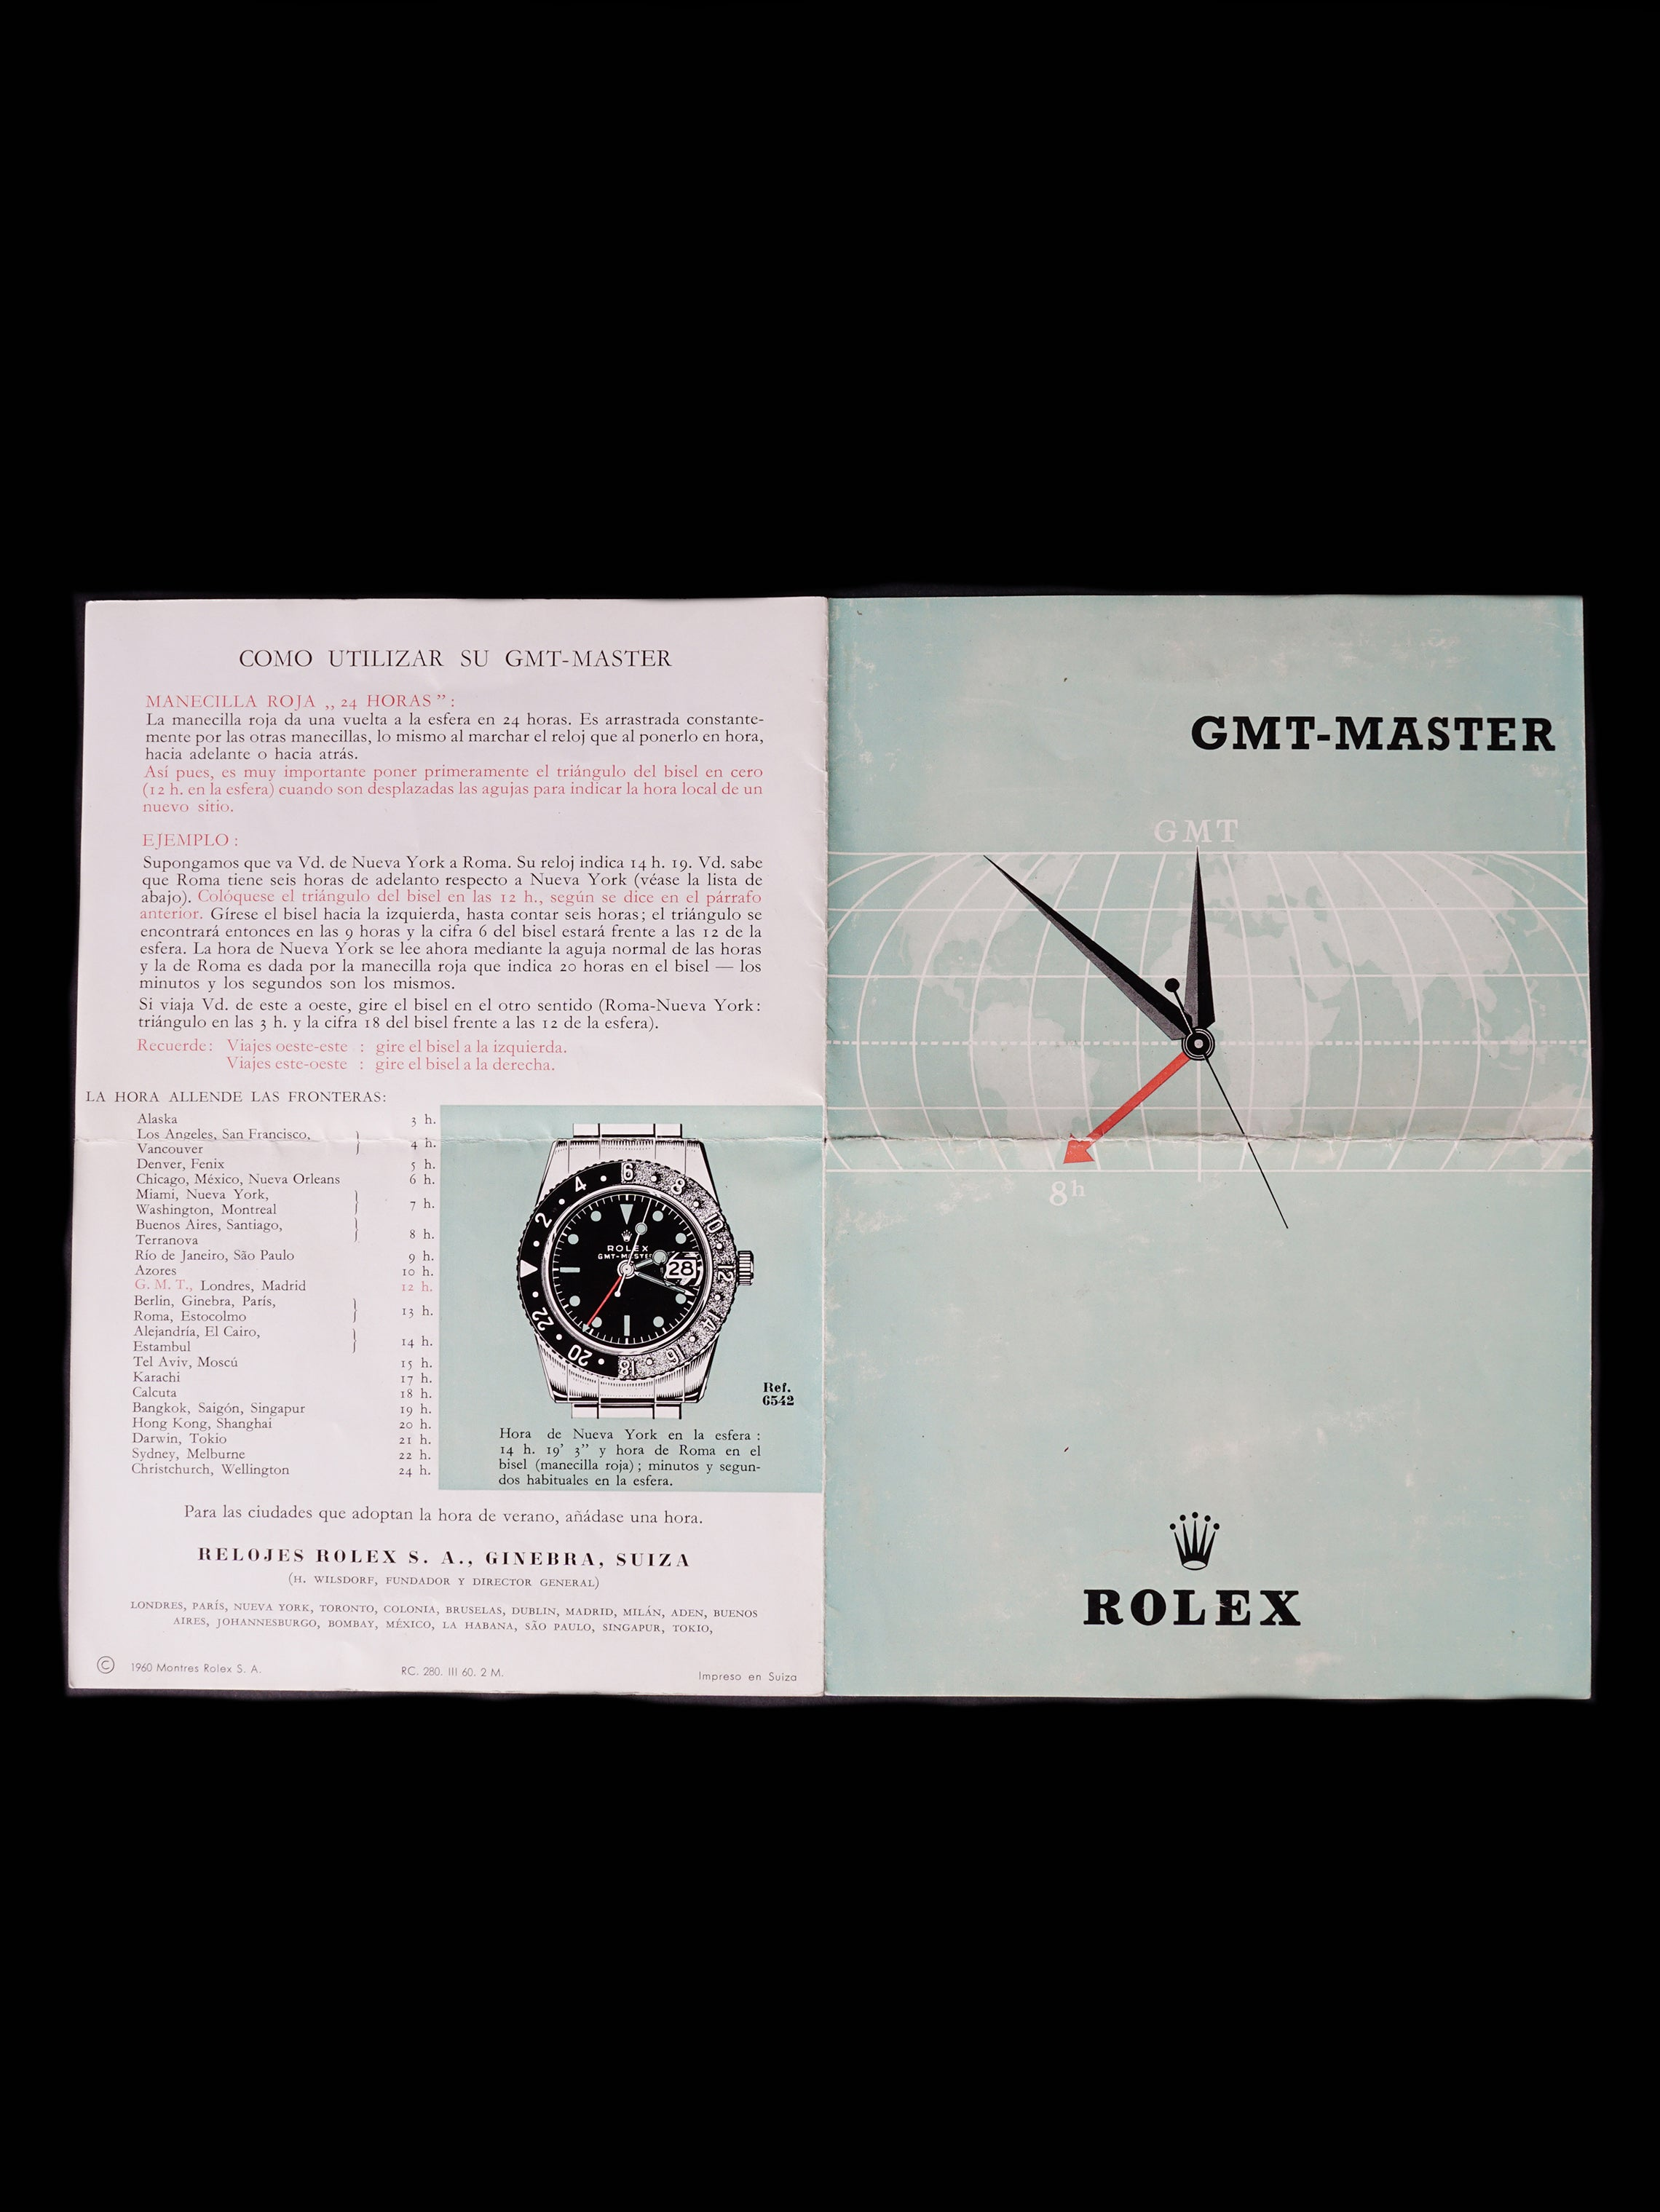 1961 Rolex GMT-Master (Ref. 1675) PCG, Gilt Chapter Ring, Exclamation W/ Box and Papers